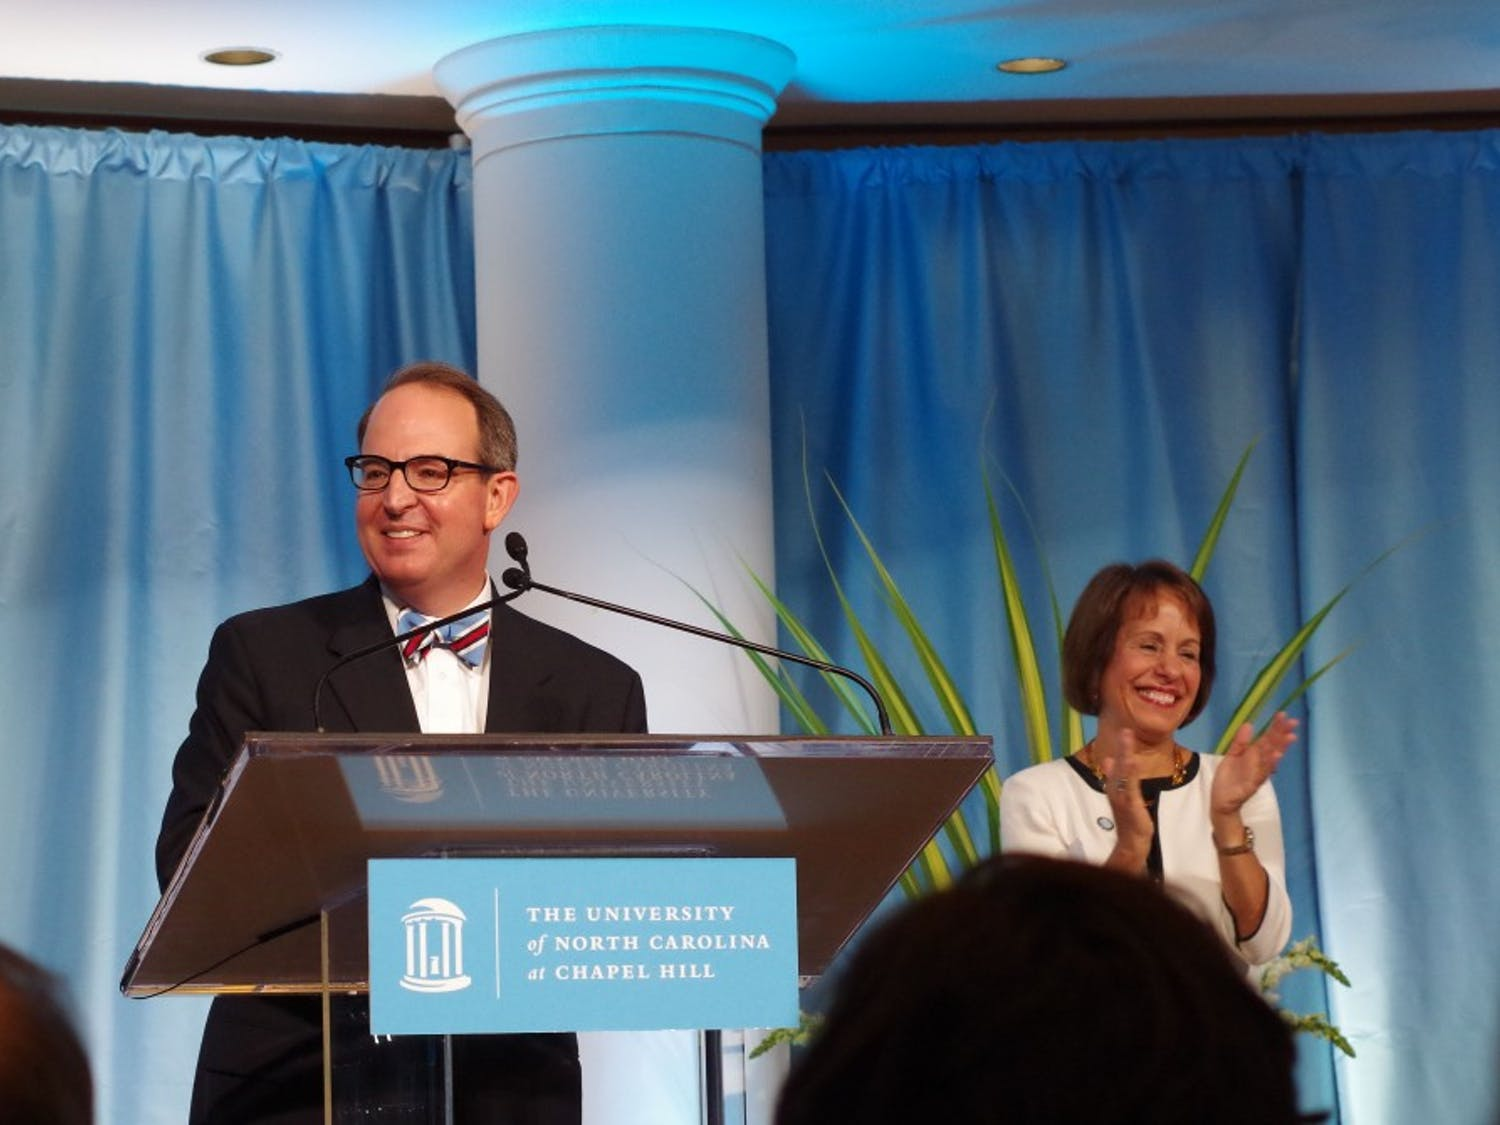 Martin Brinkley took the stage as the 14th dean of the UNC School of Law on Friday at the Law School Rotunda.